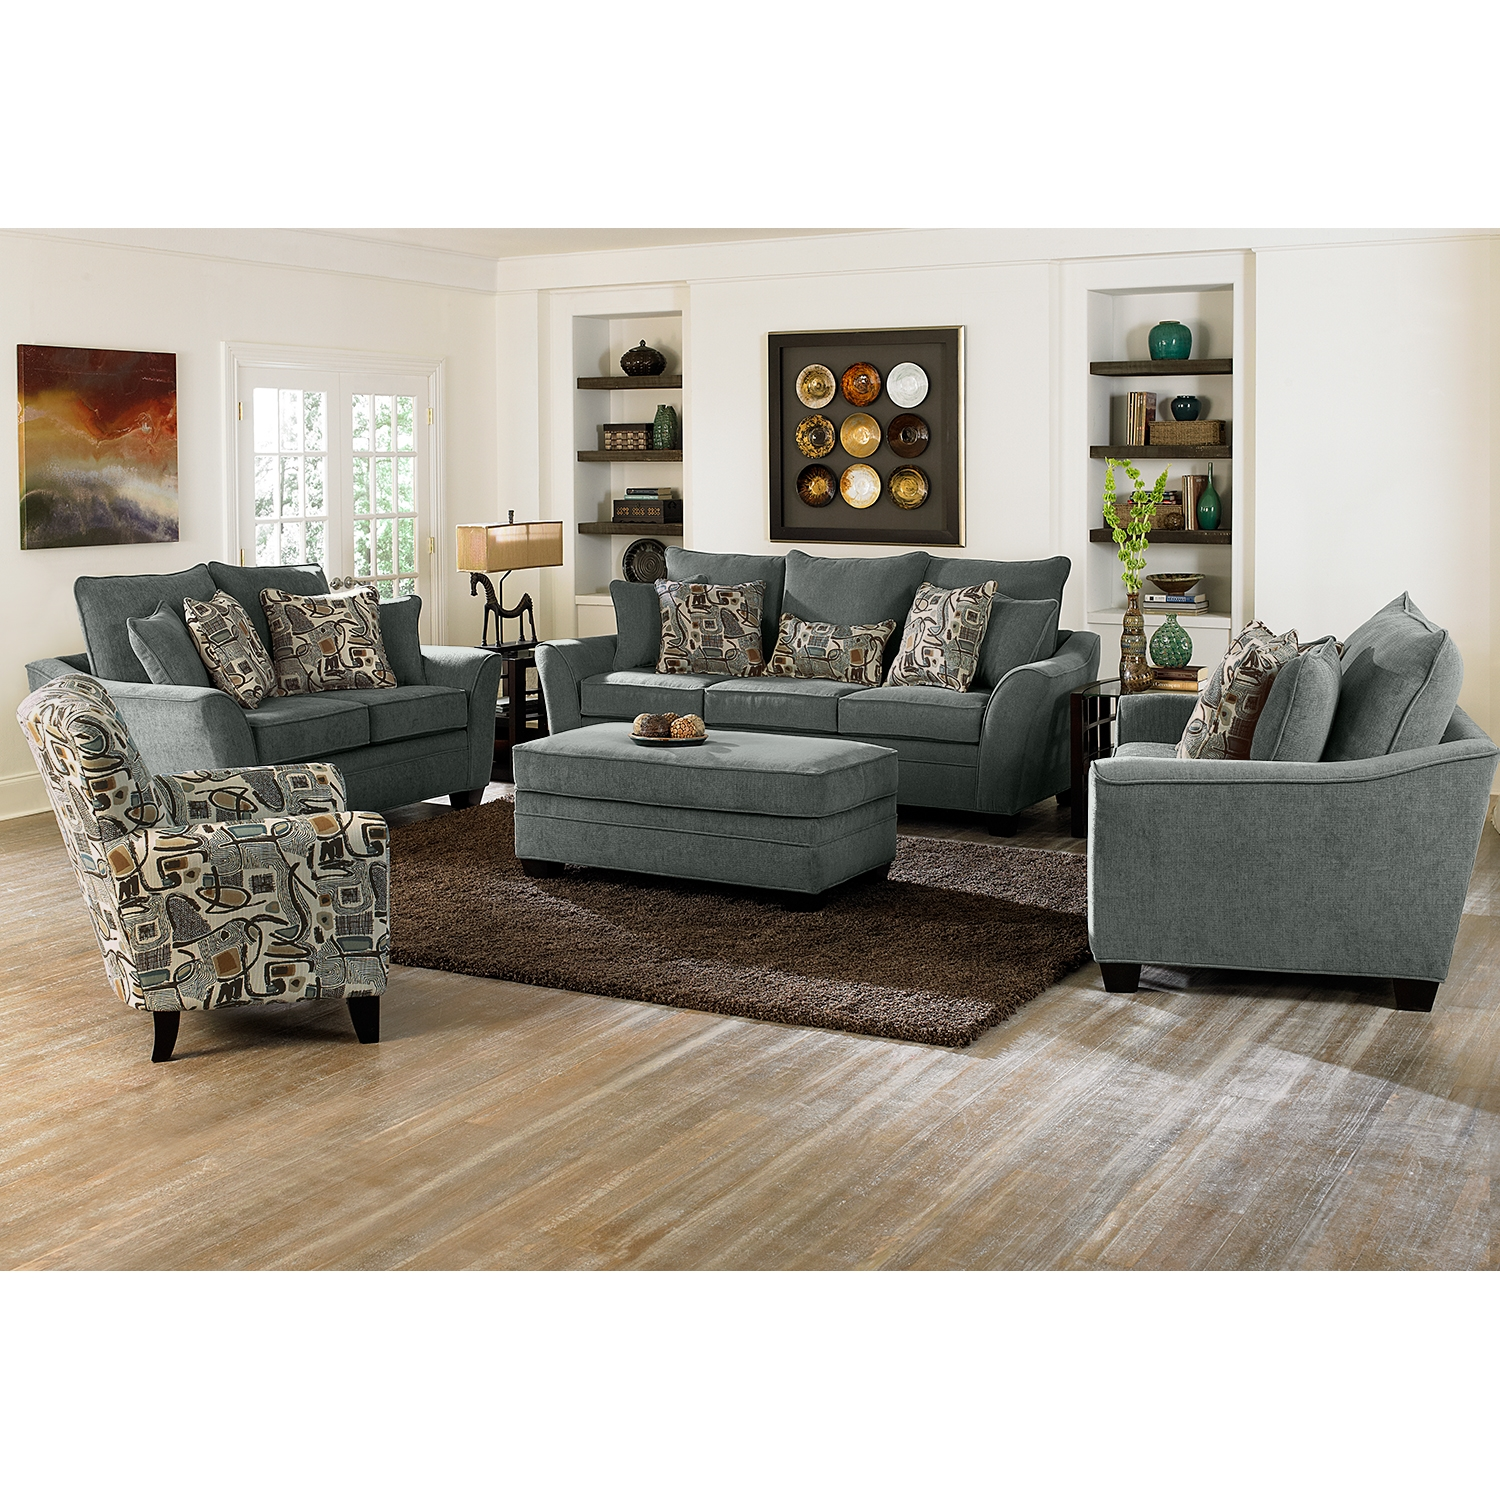 Living room chair and ottoman modern house Loungers for living room